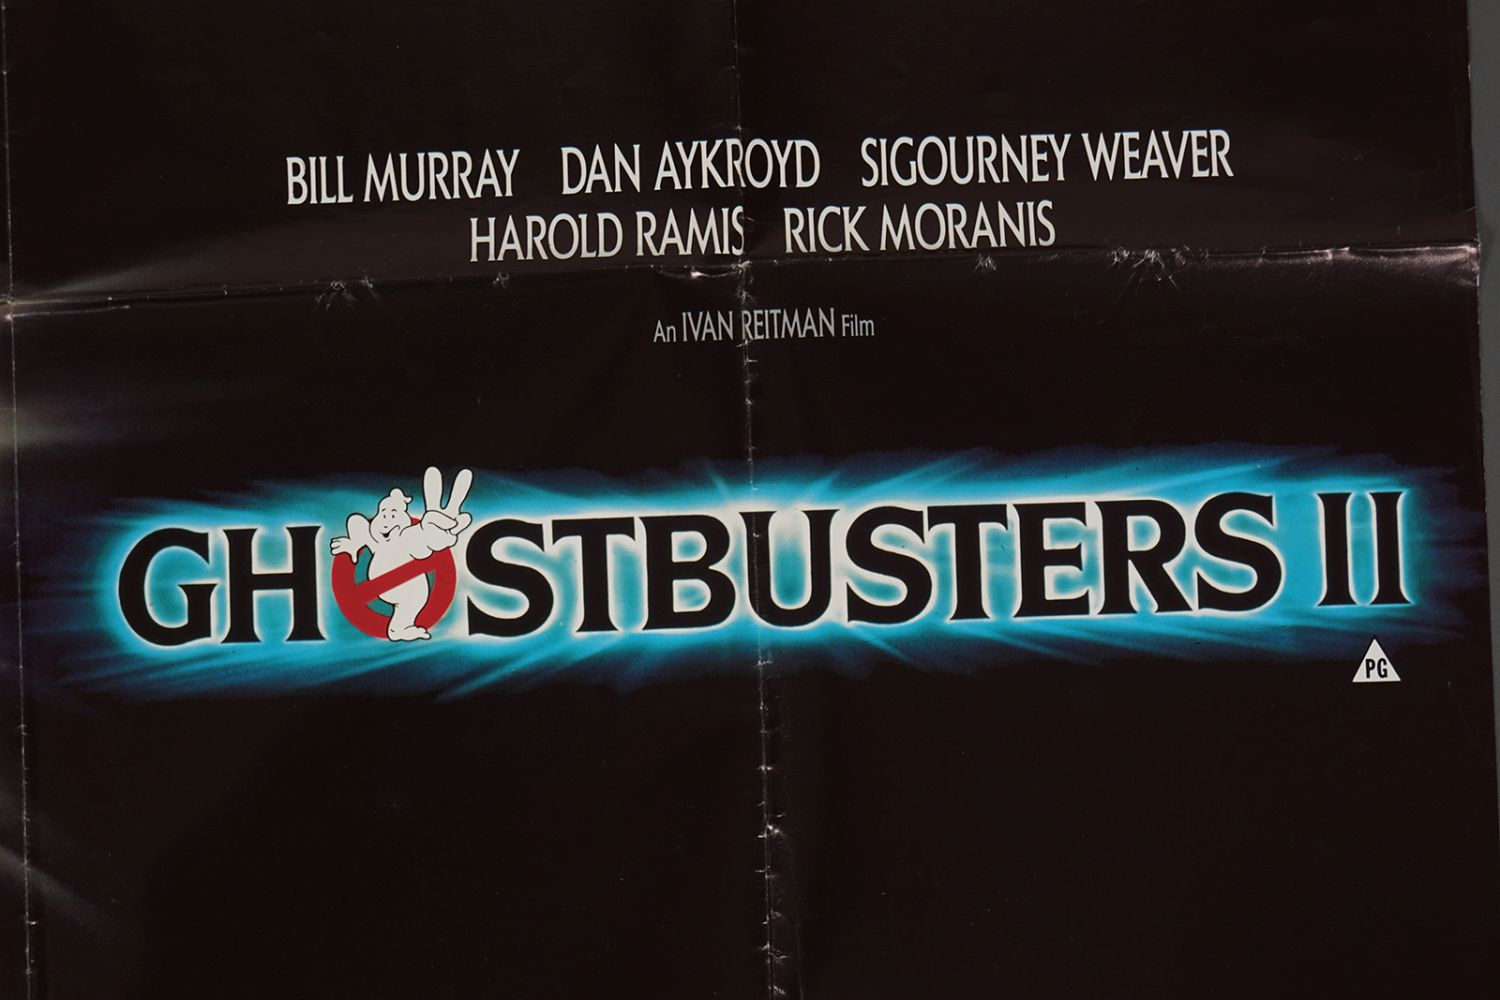 GHOST BUSTERS II - Image 3 of 3